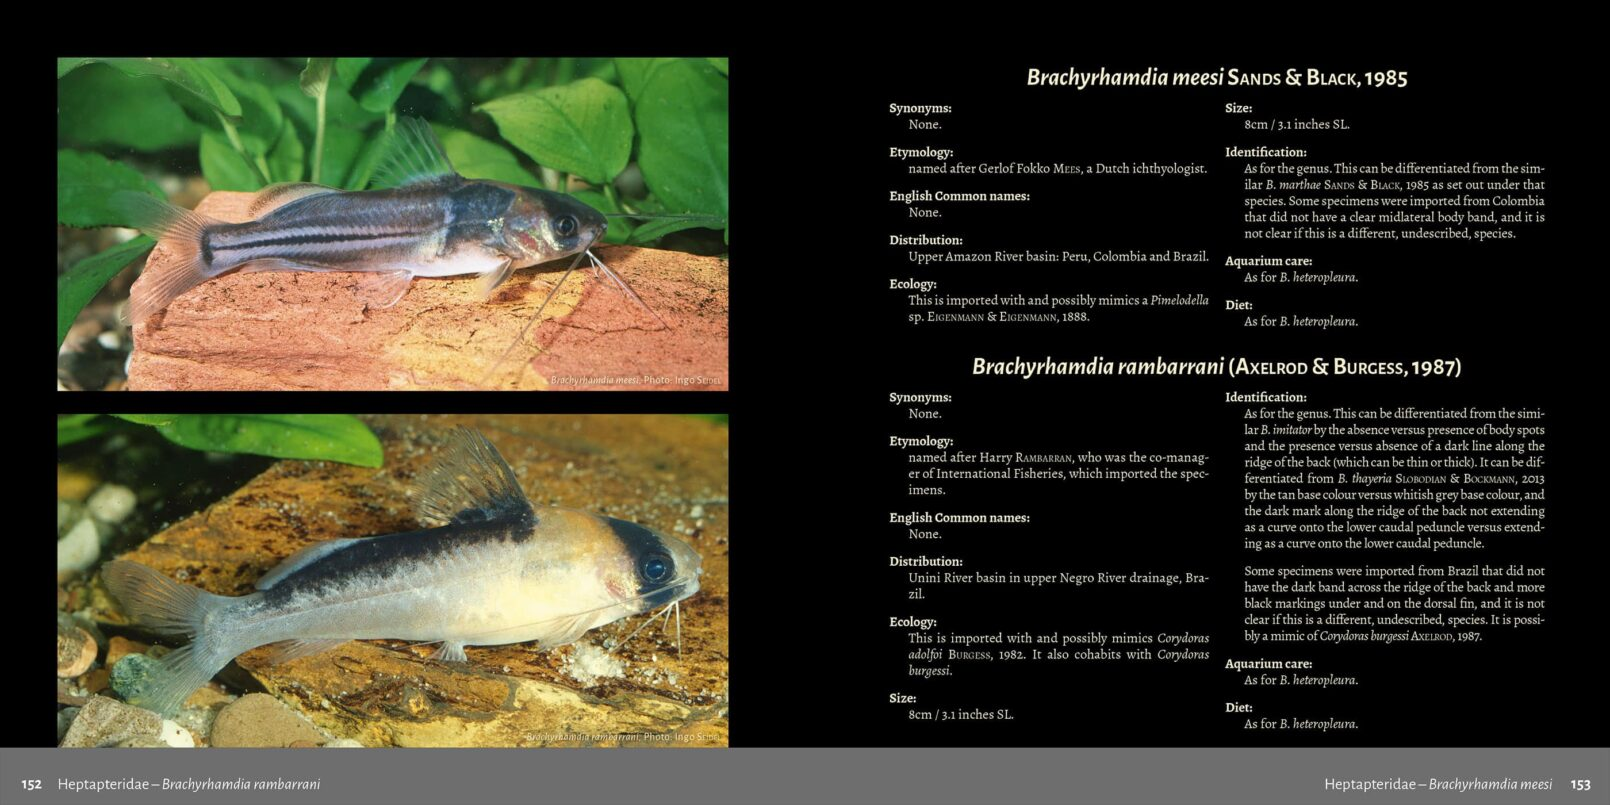 Pims - Pimelodidae,  Heptapteridae and  Pseudopimelodidae Catfishes / Steven Grant pages 152, 153